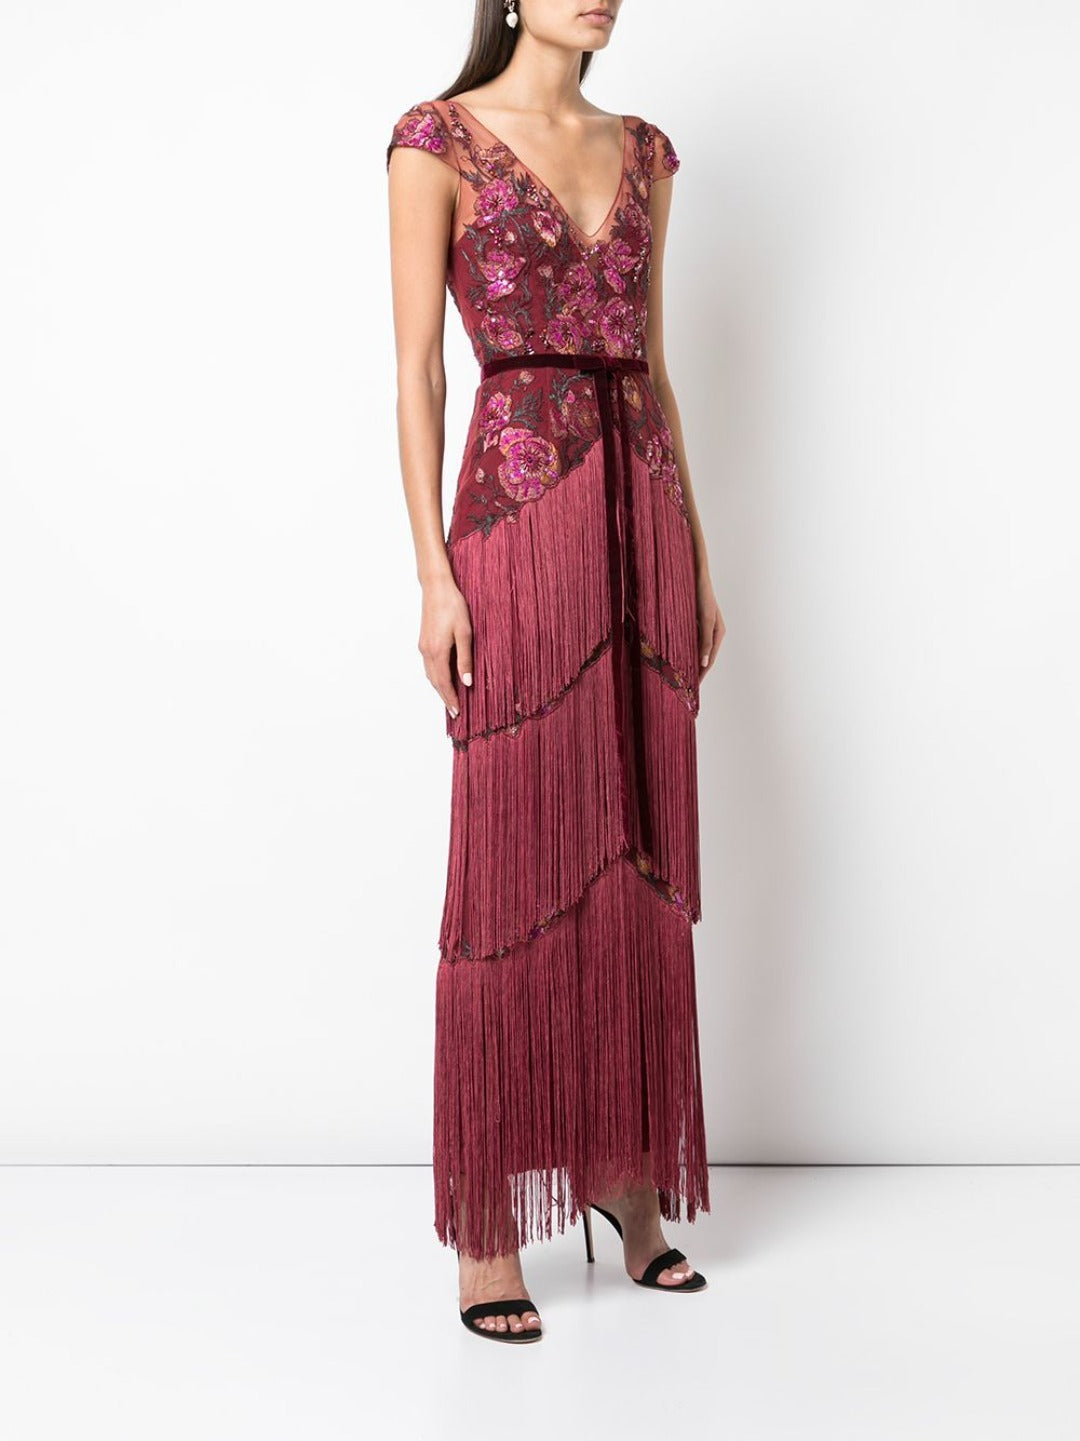 Fringe Gown in Wine